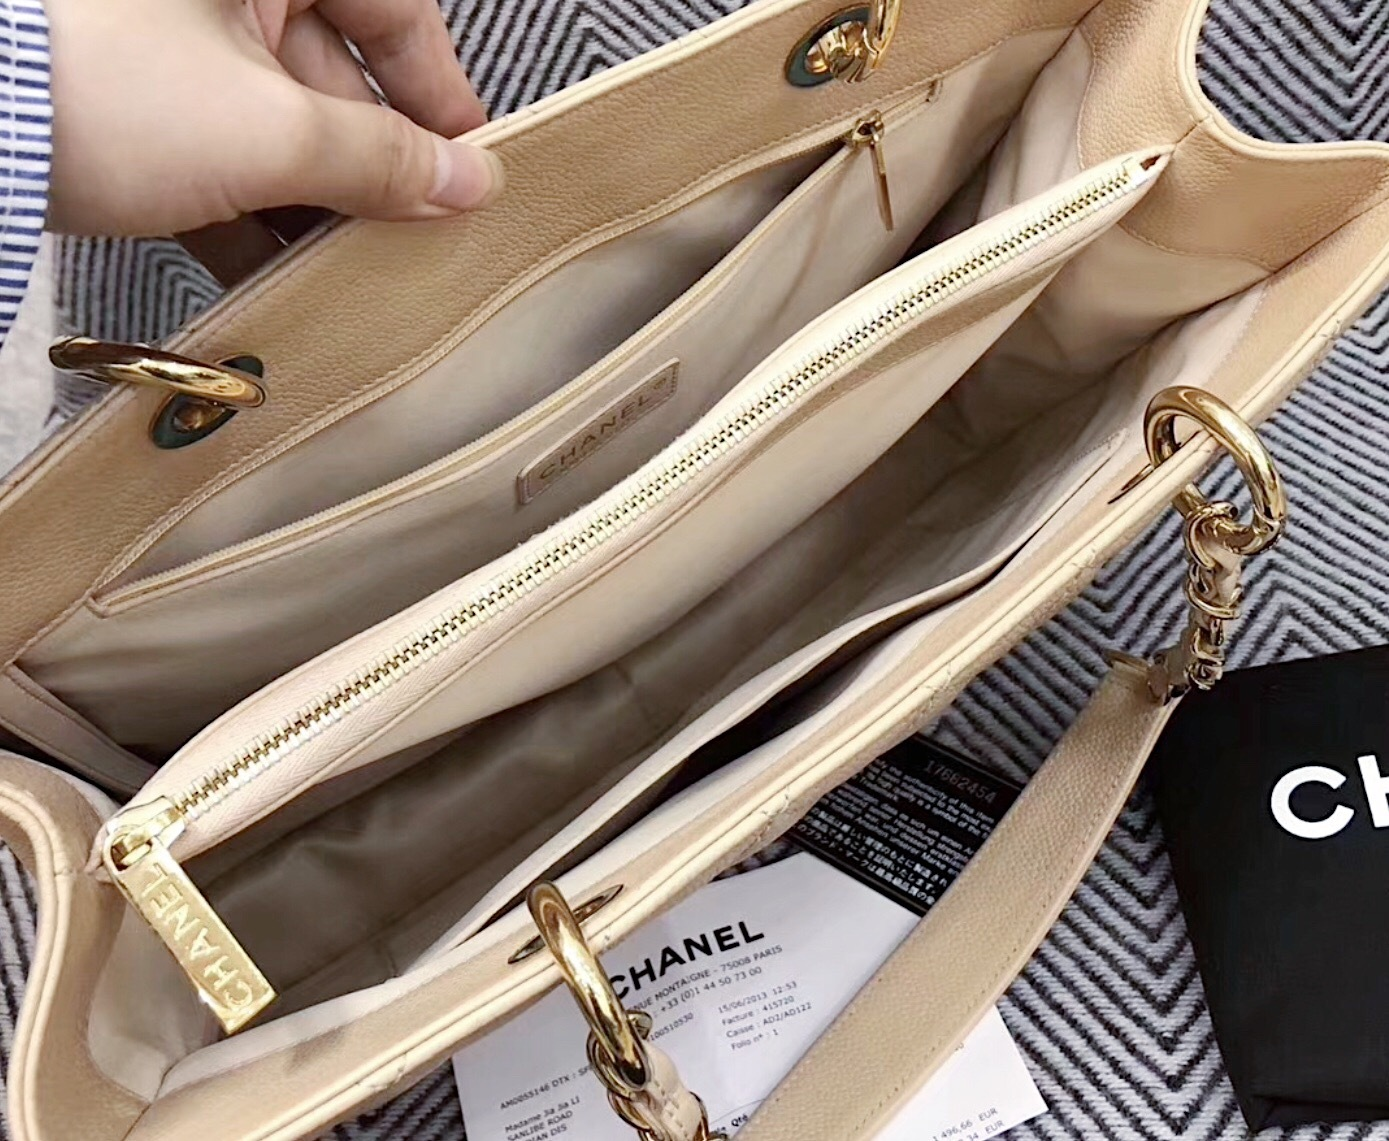 6feec4f349d9 AUTHENTIC CHANEL QUILTED CAVIAR GST GRAND SHOPPING TOTE BAG BEIGE GHW  RECEIPT